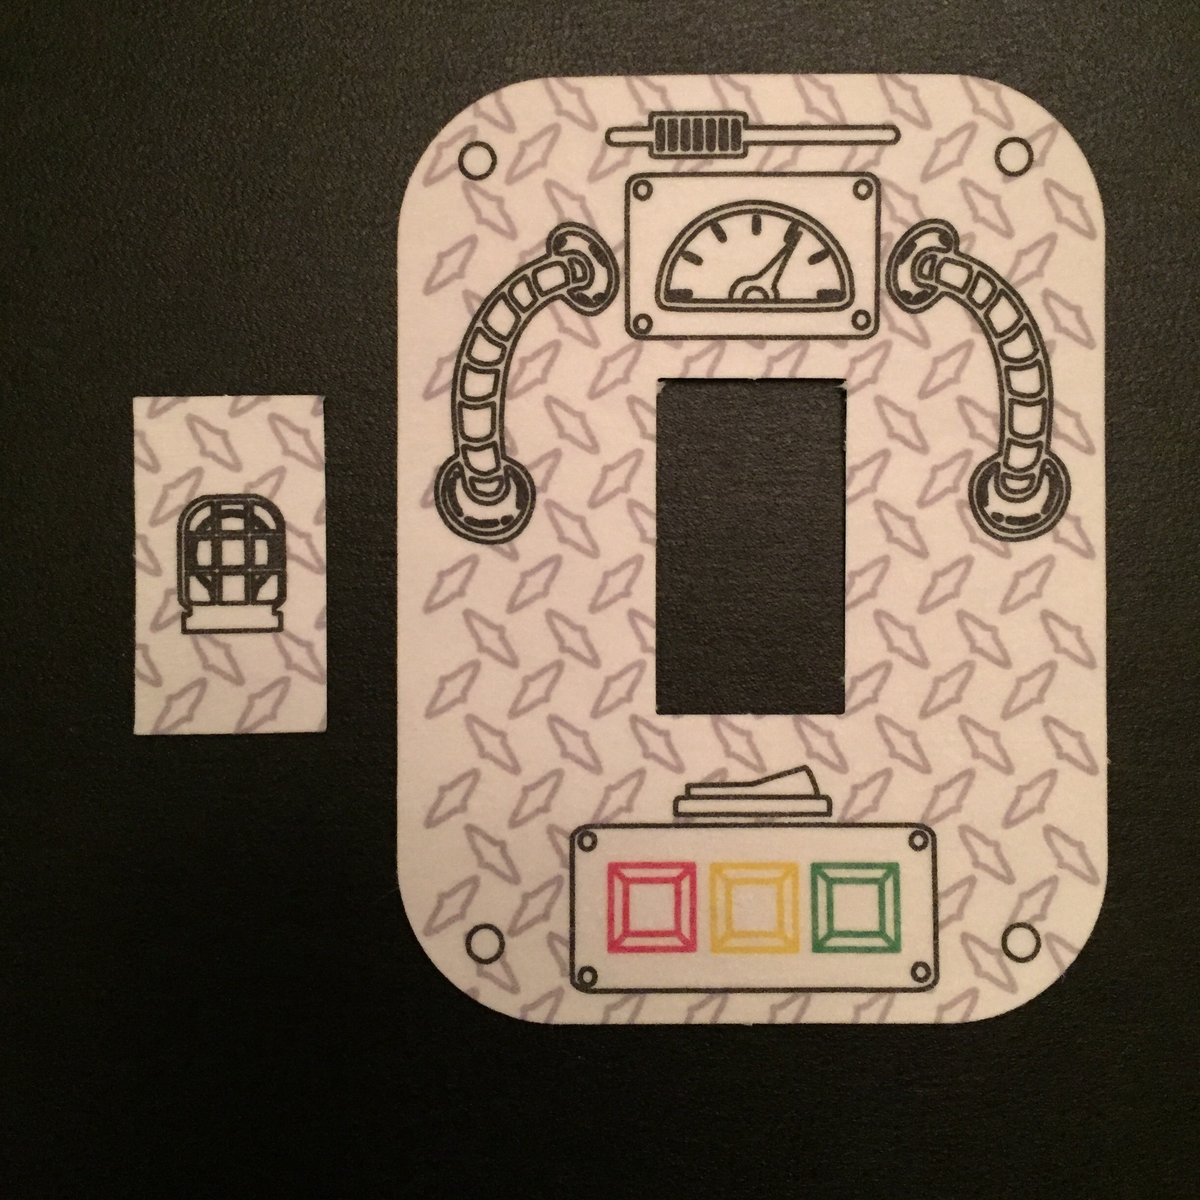 Adhesive Silly Patch to Secure CGM Sensor and Insulin Pump ...